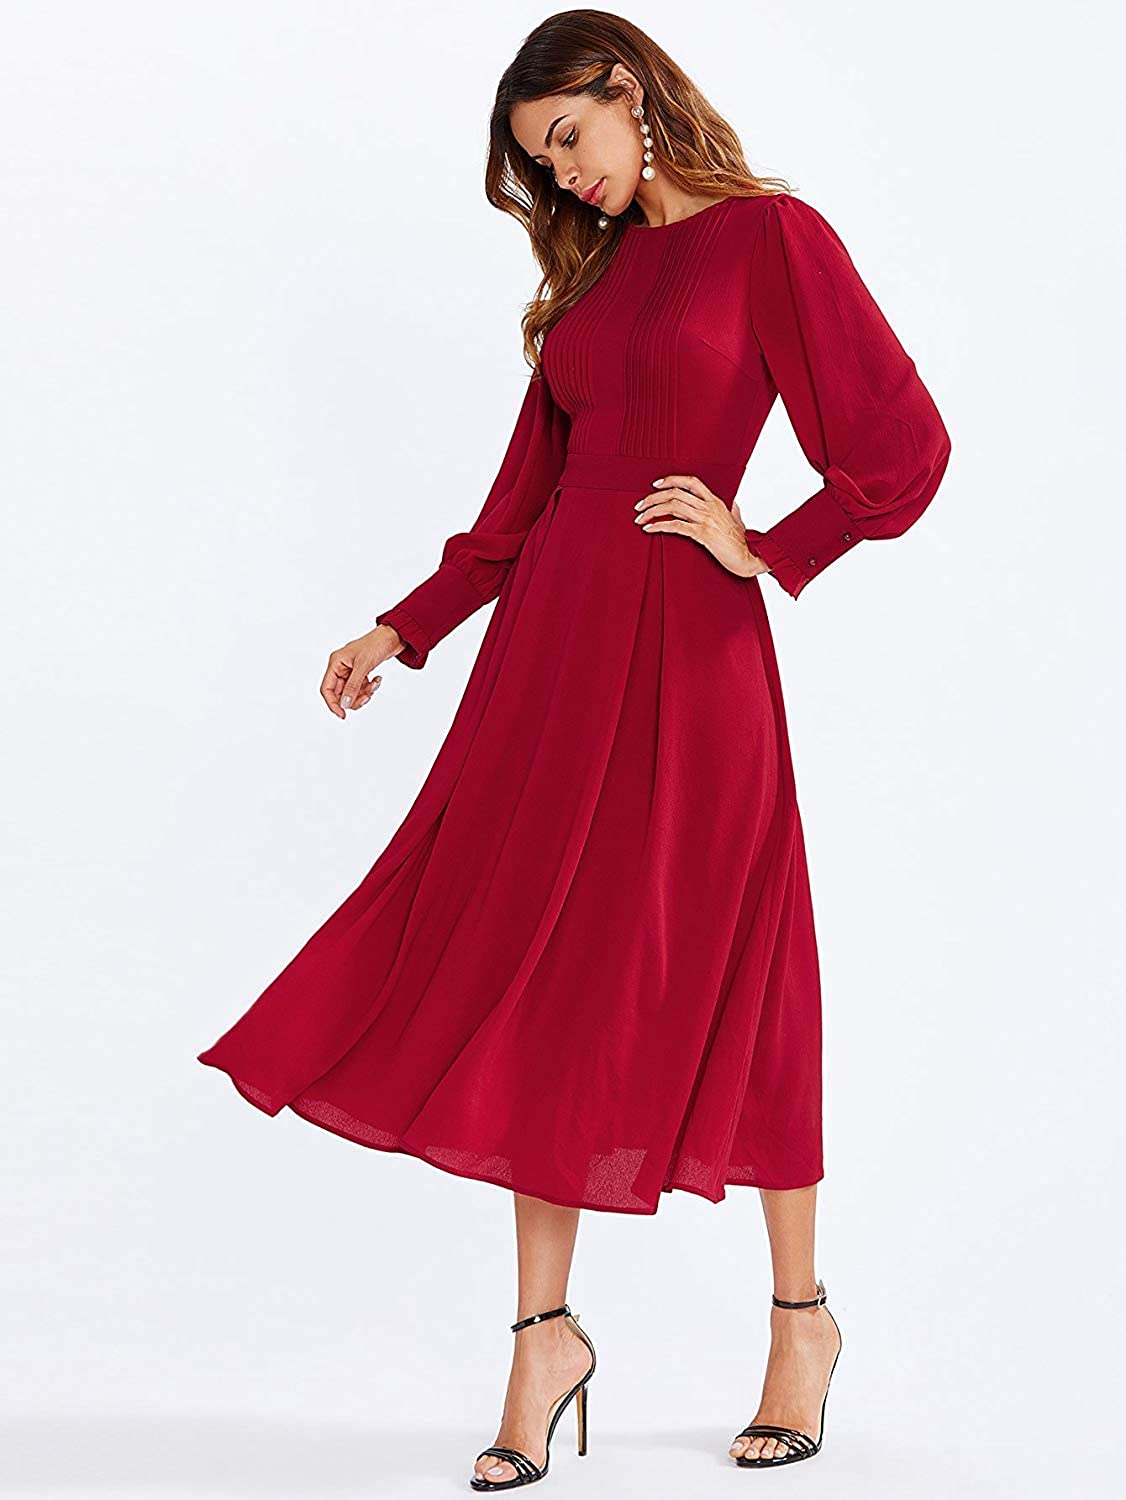 1930s Dresses | 30s Art Deco Dress Milumia Womens Elegant Frilled Long Sleeve Pleated Fit & Flare Dress $36.99 AT vintagedancer.com